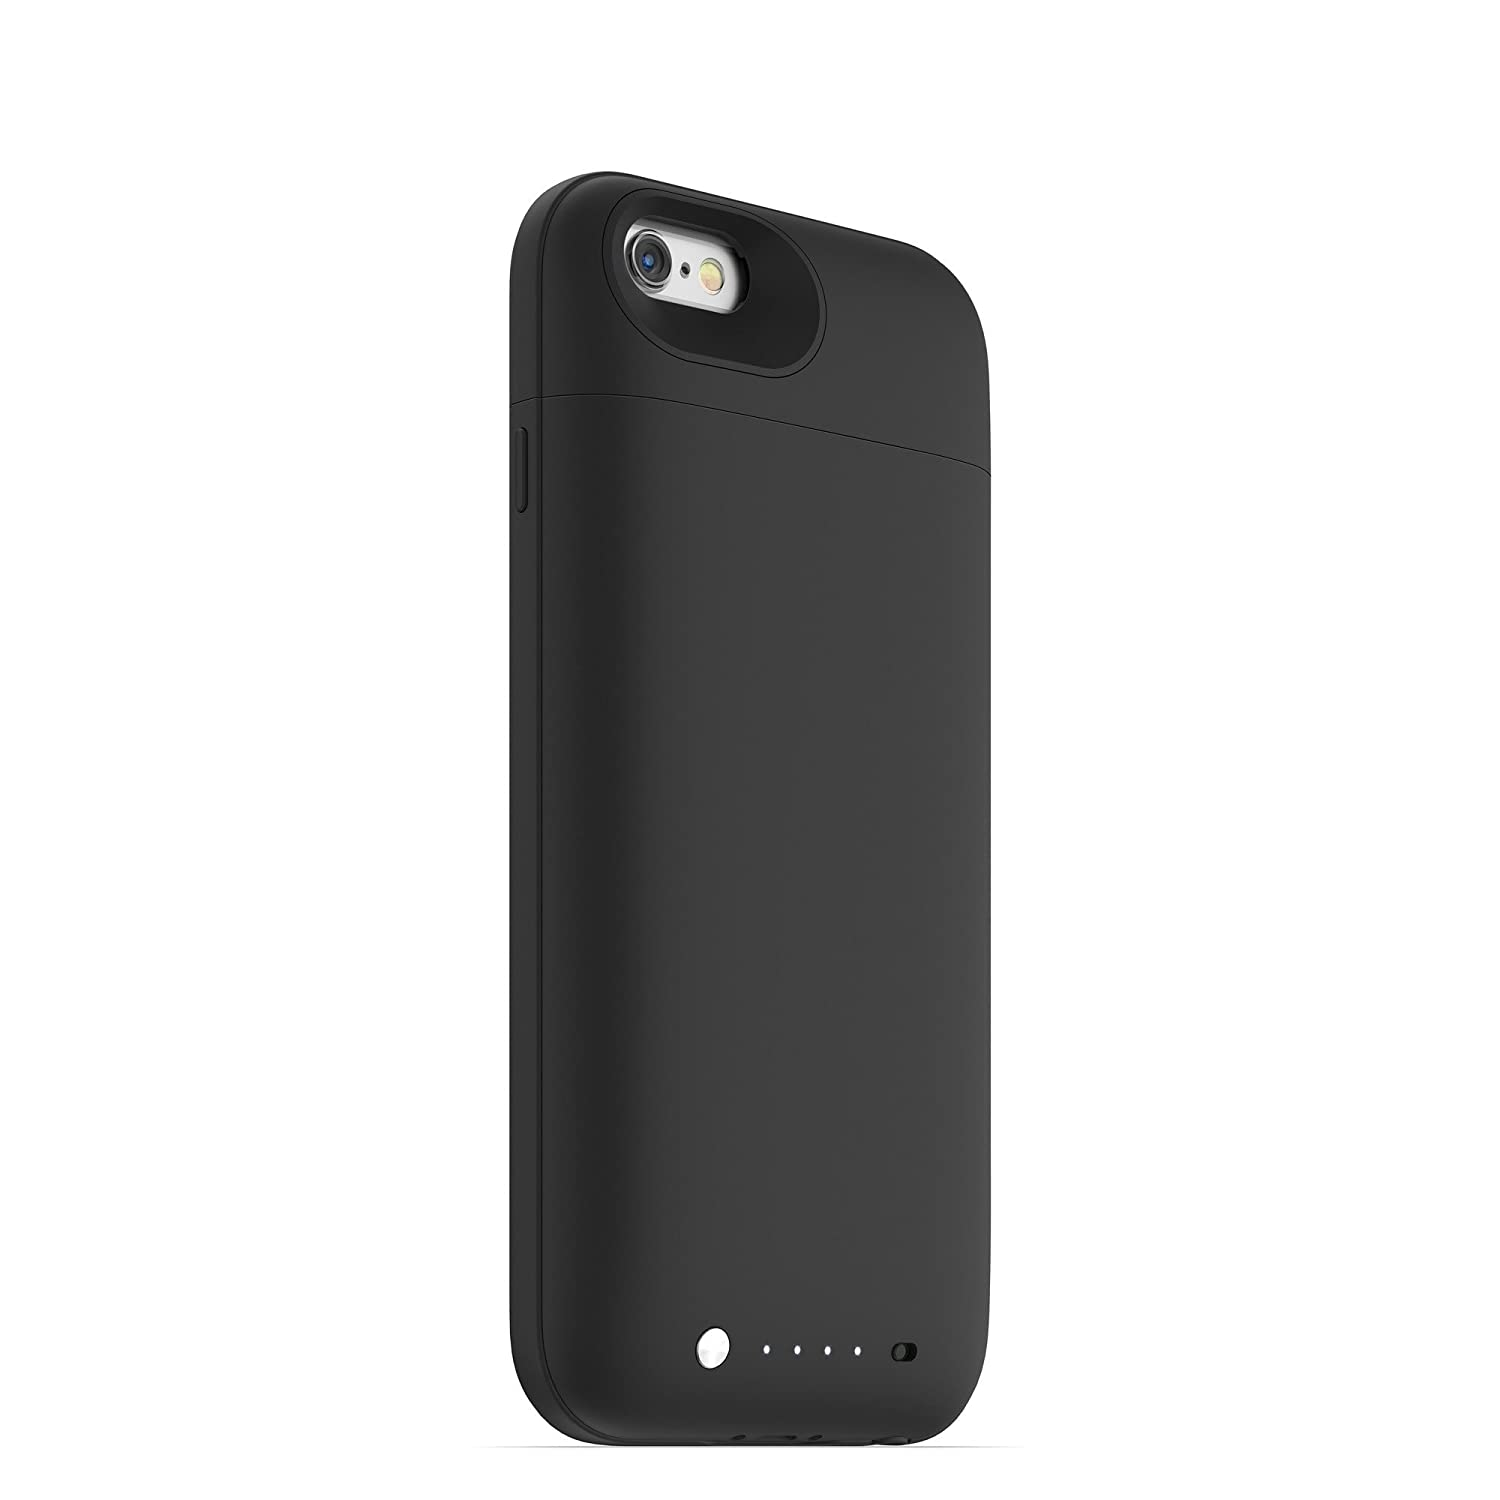 mophie spacepack battery case with built in 32GB storage for iPhone 5/5s (1,700mAh) - Black (Discontinued by Manufacturer)